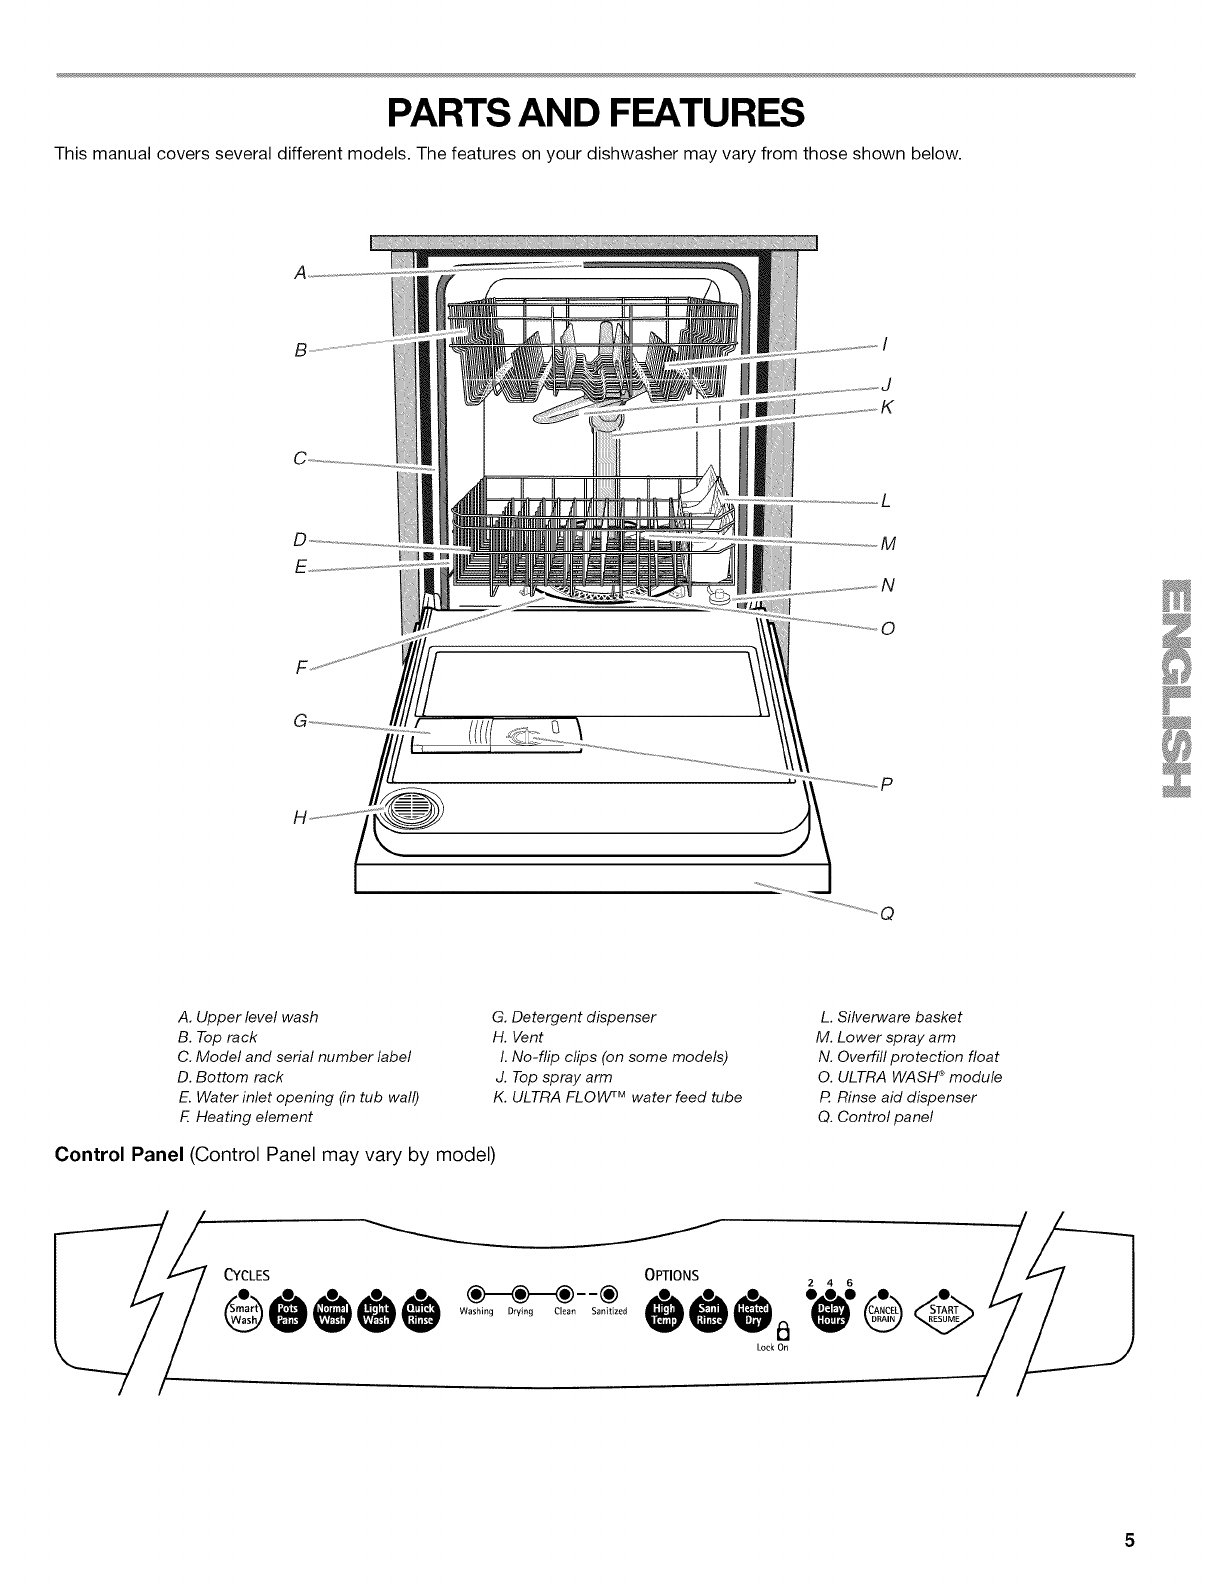 Frigidaire Dw6250a1 Dishwasher Parts Manual Guide